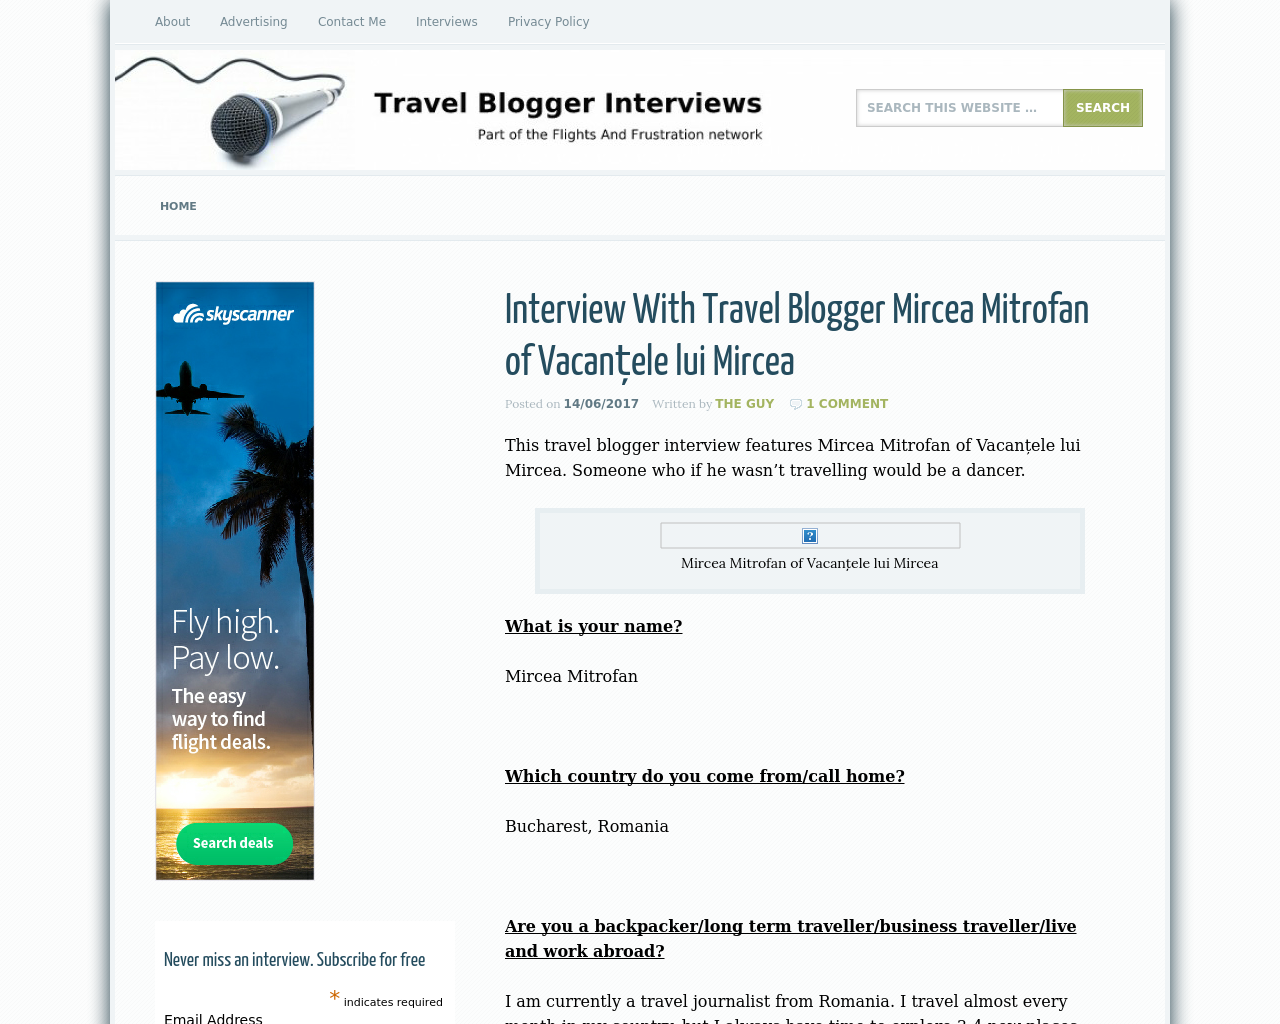 Travel-Blogger-Interviews-Advertising-Reviews-Pricing